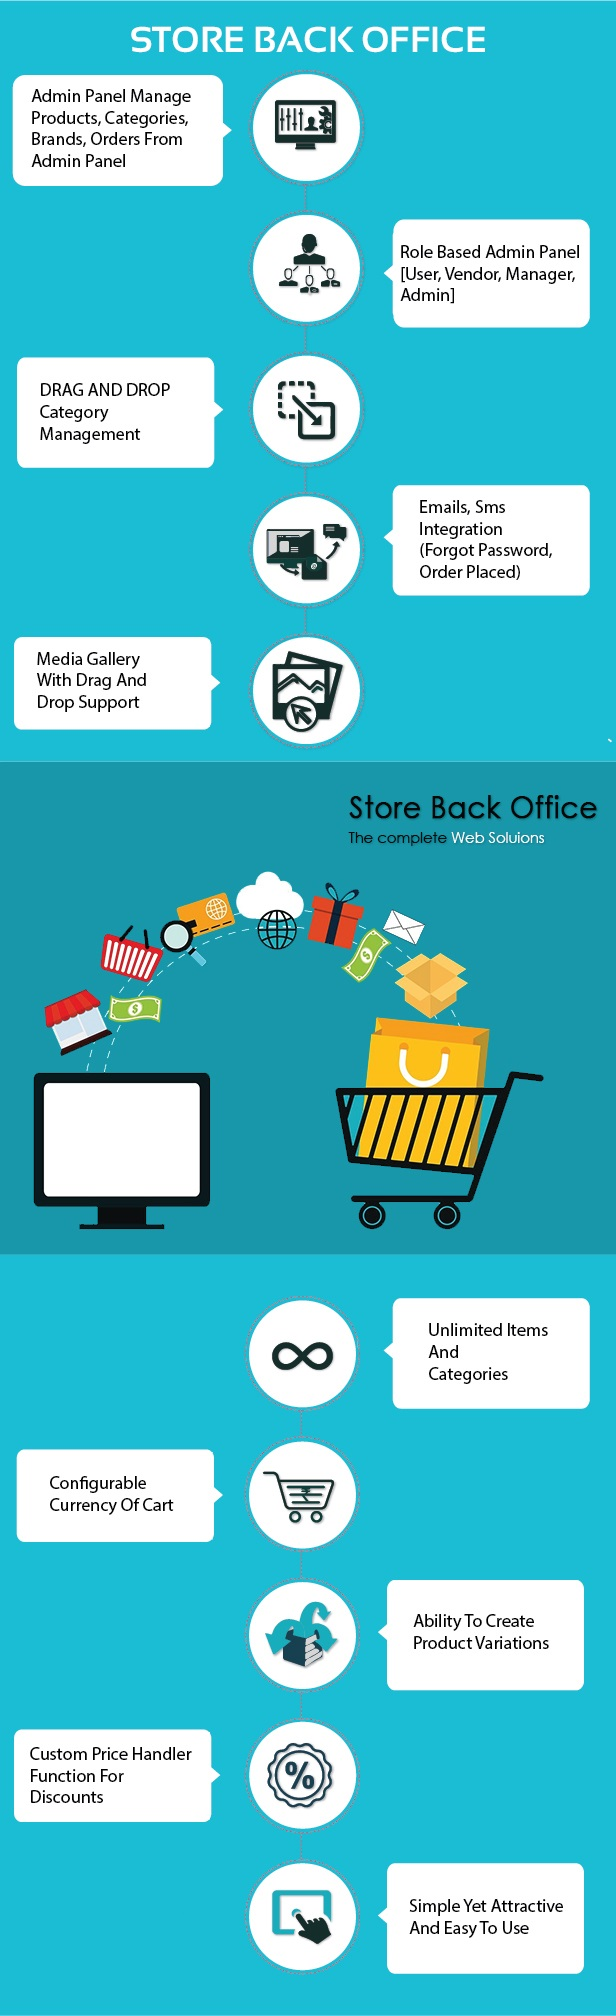 store back office features